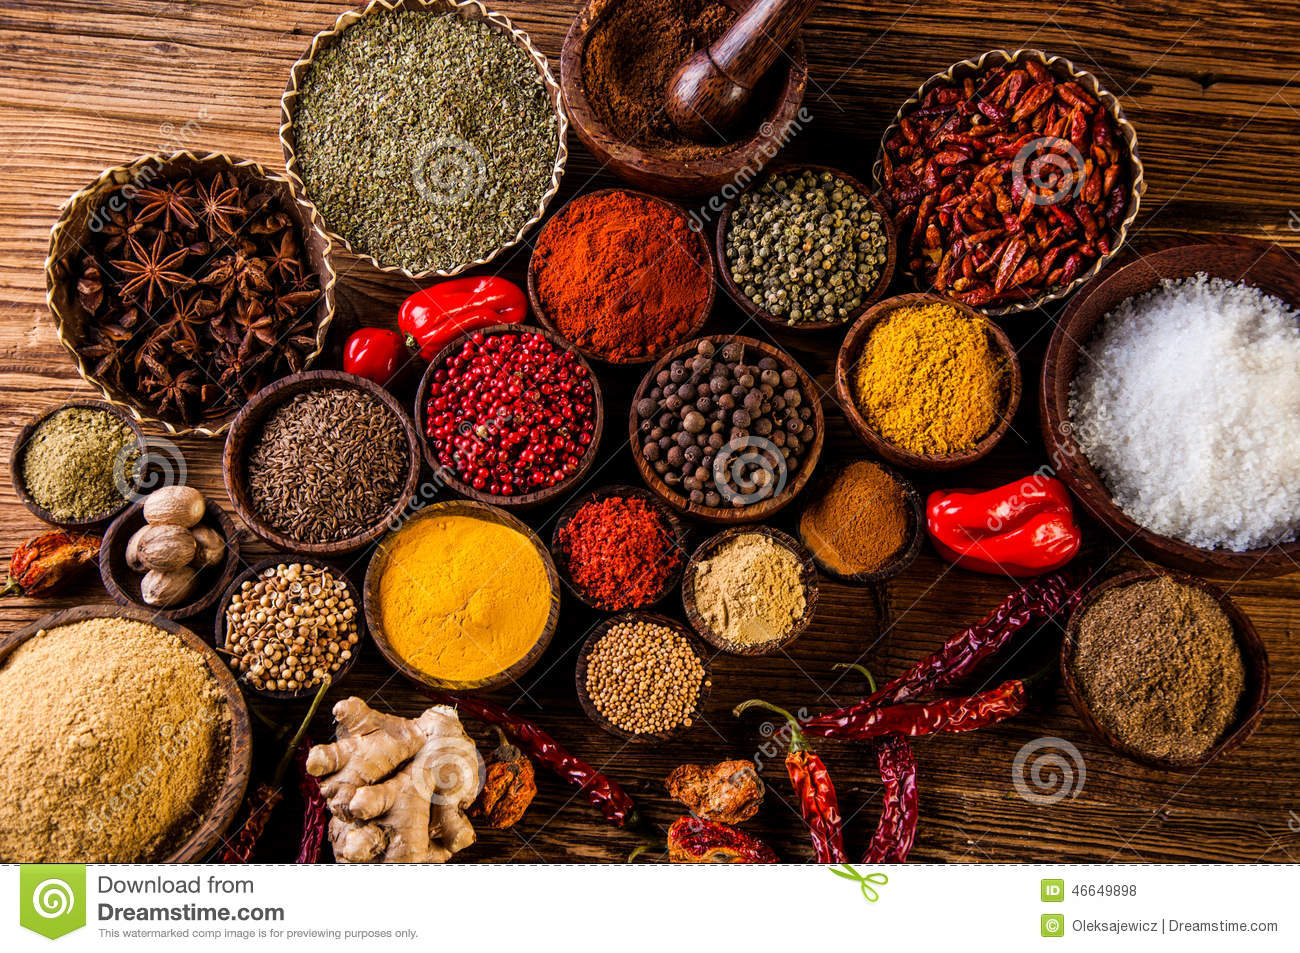 Variability of asian spices on wooden table stock photo for 7 spices asian cuisine